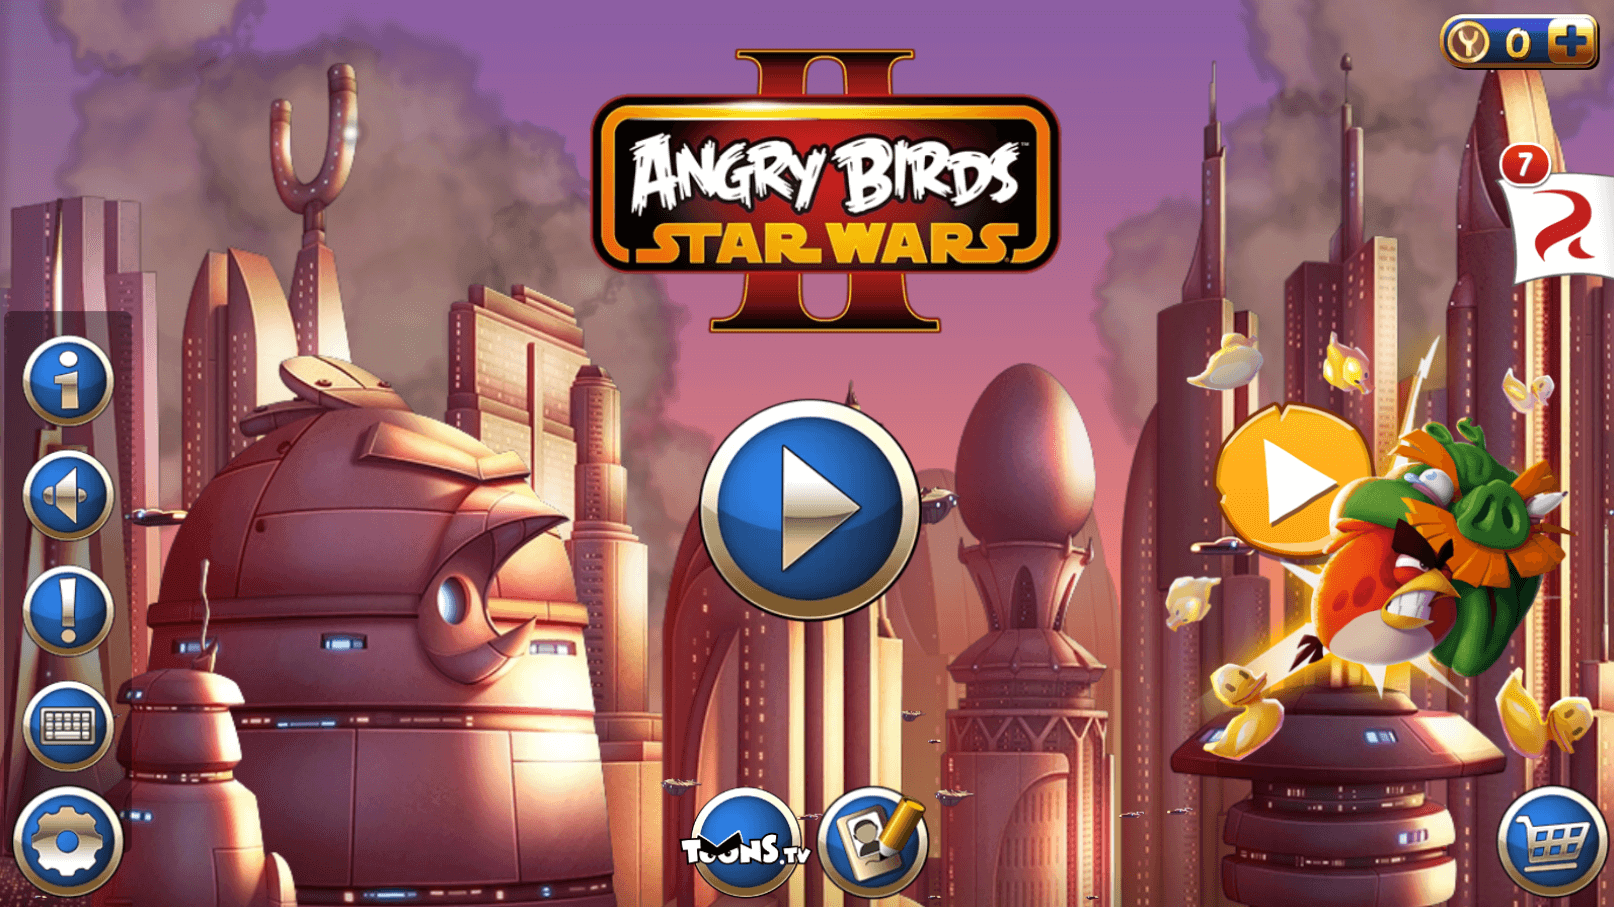 angry birds star wars ii games game play pc download 1 - Angry Birds Star Wars II Free